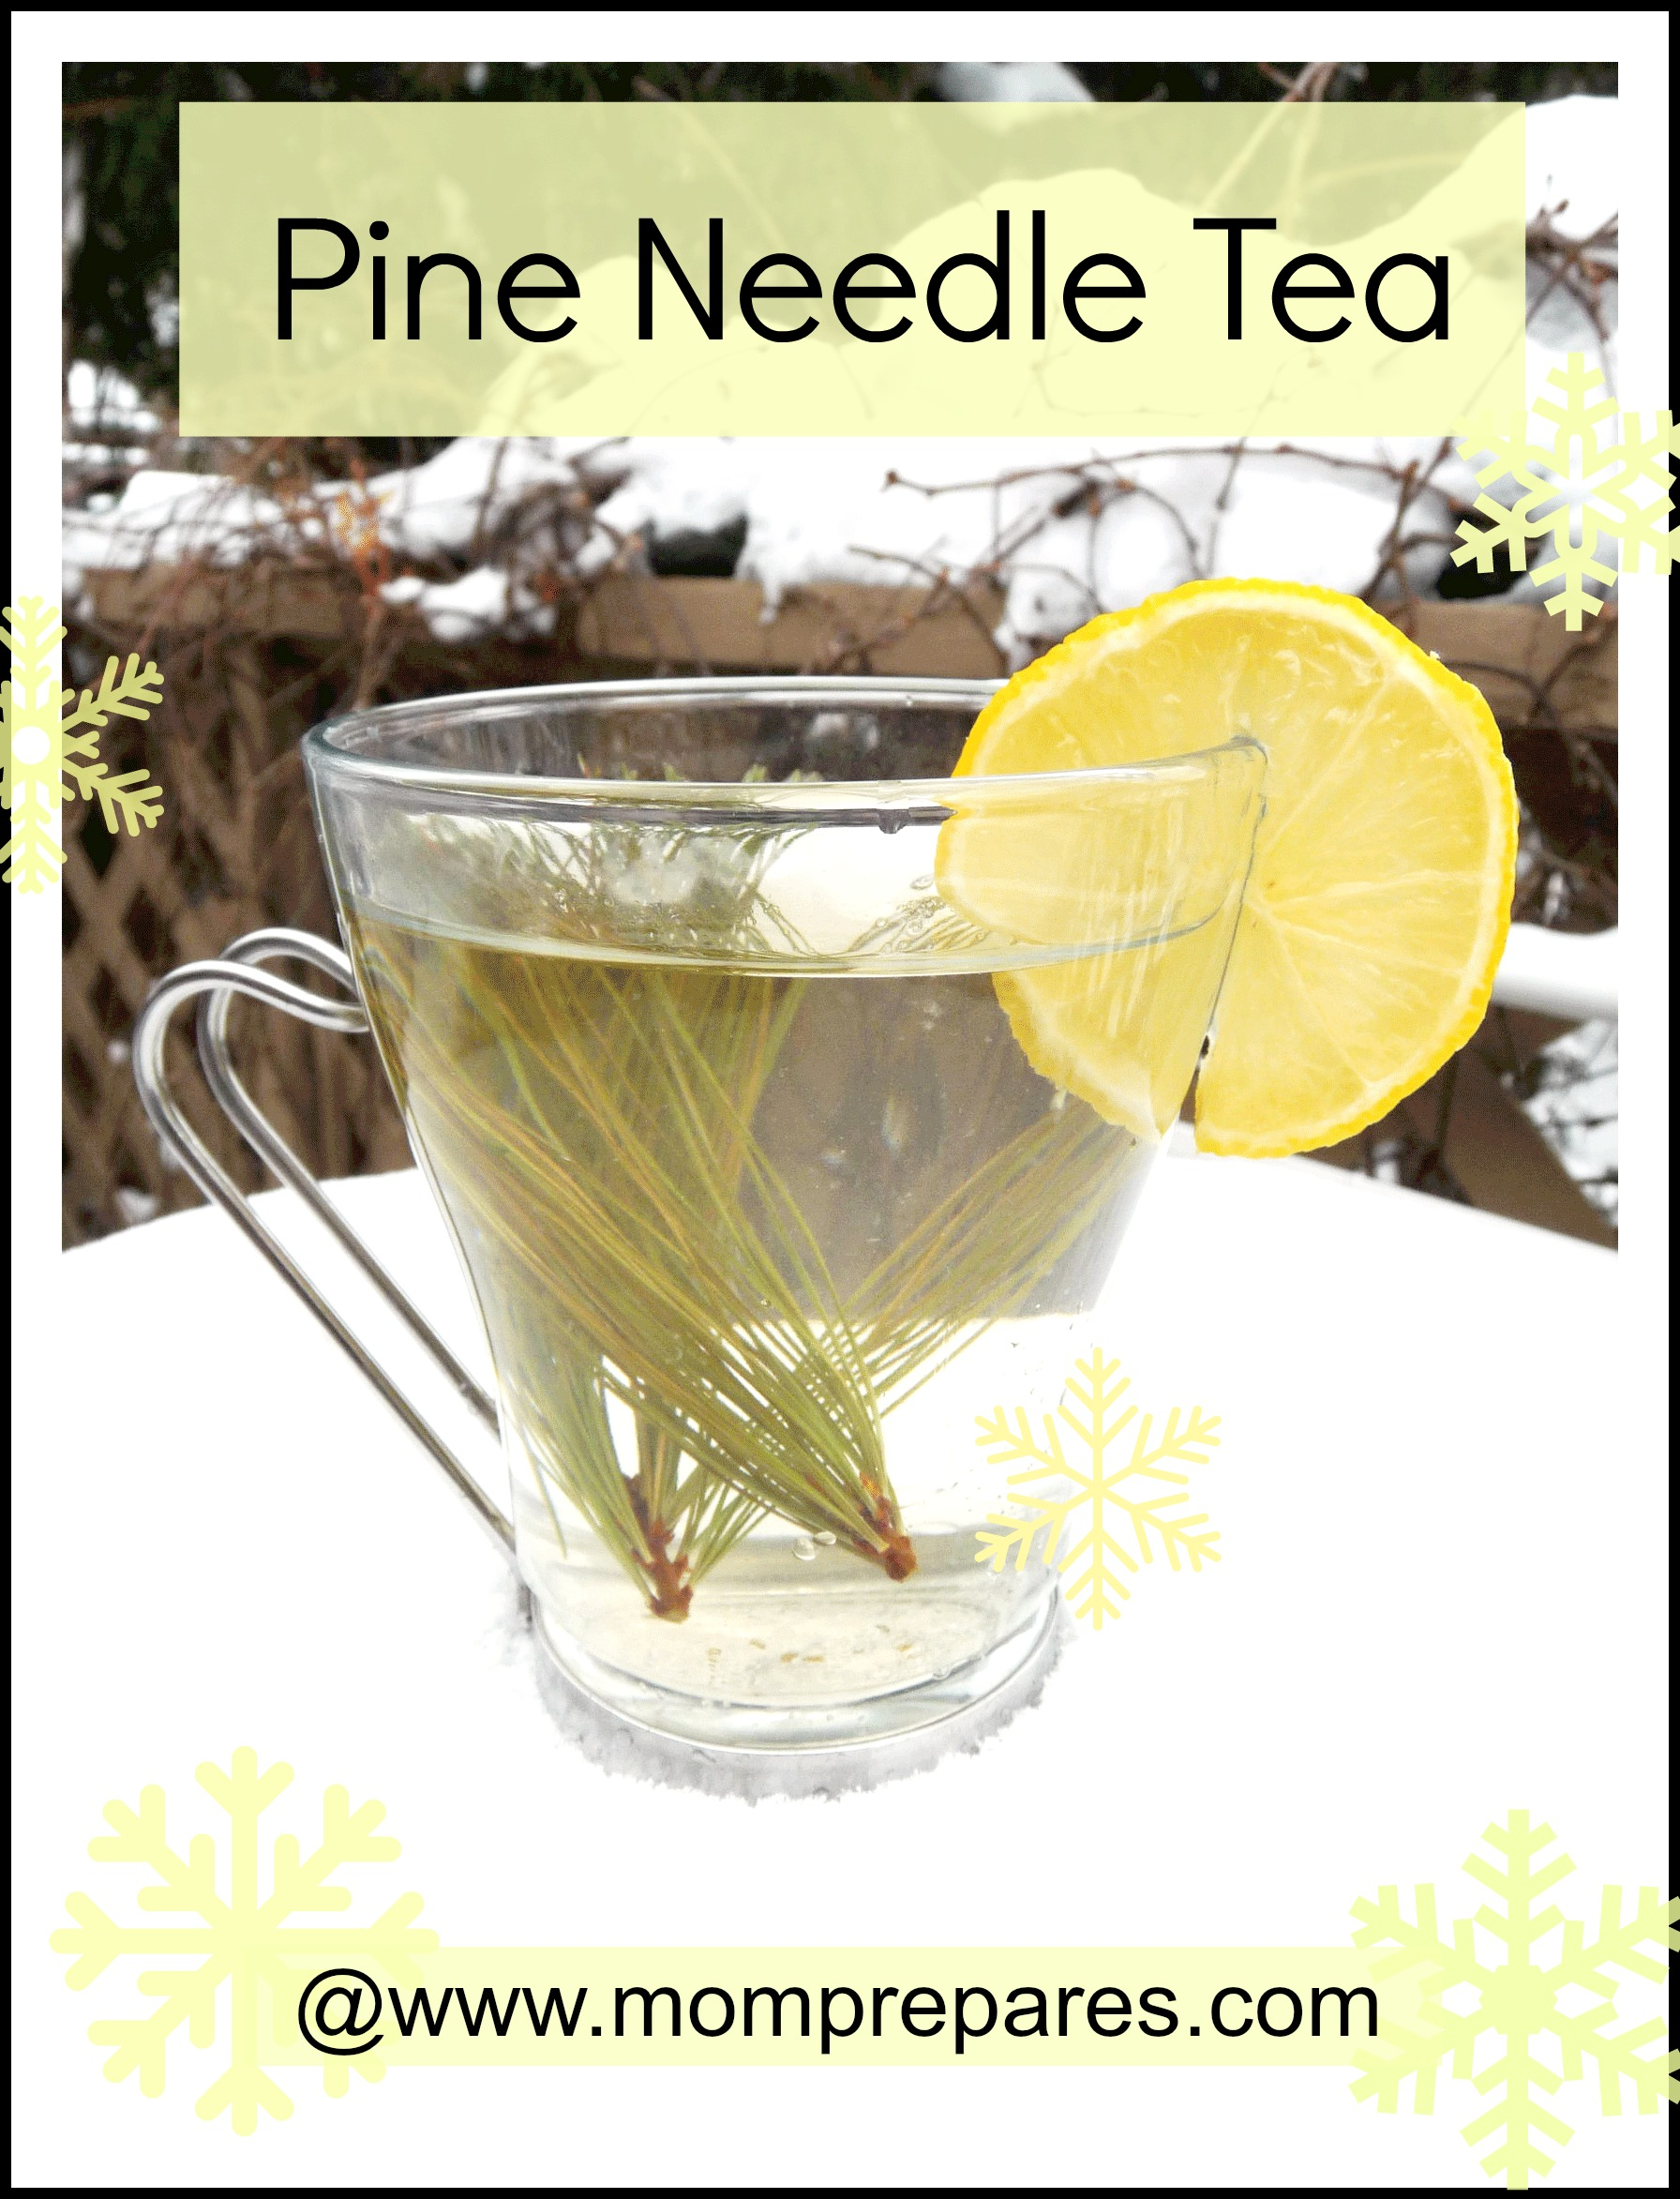 Pine tea is delicious and nutritious! Image courtesy of Karen Stephenson, cover design by MomPrepares